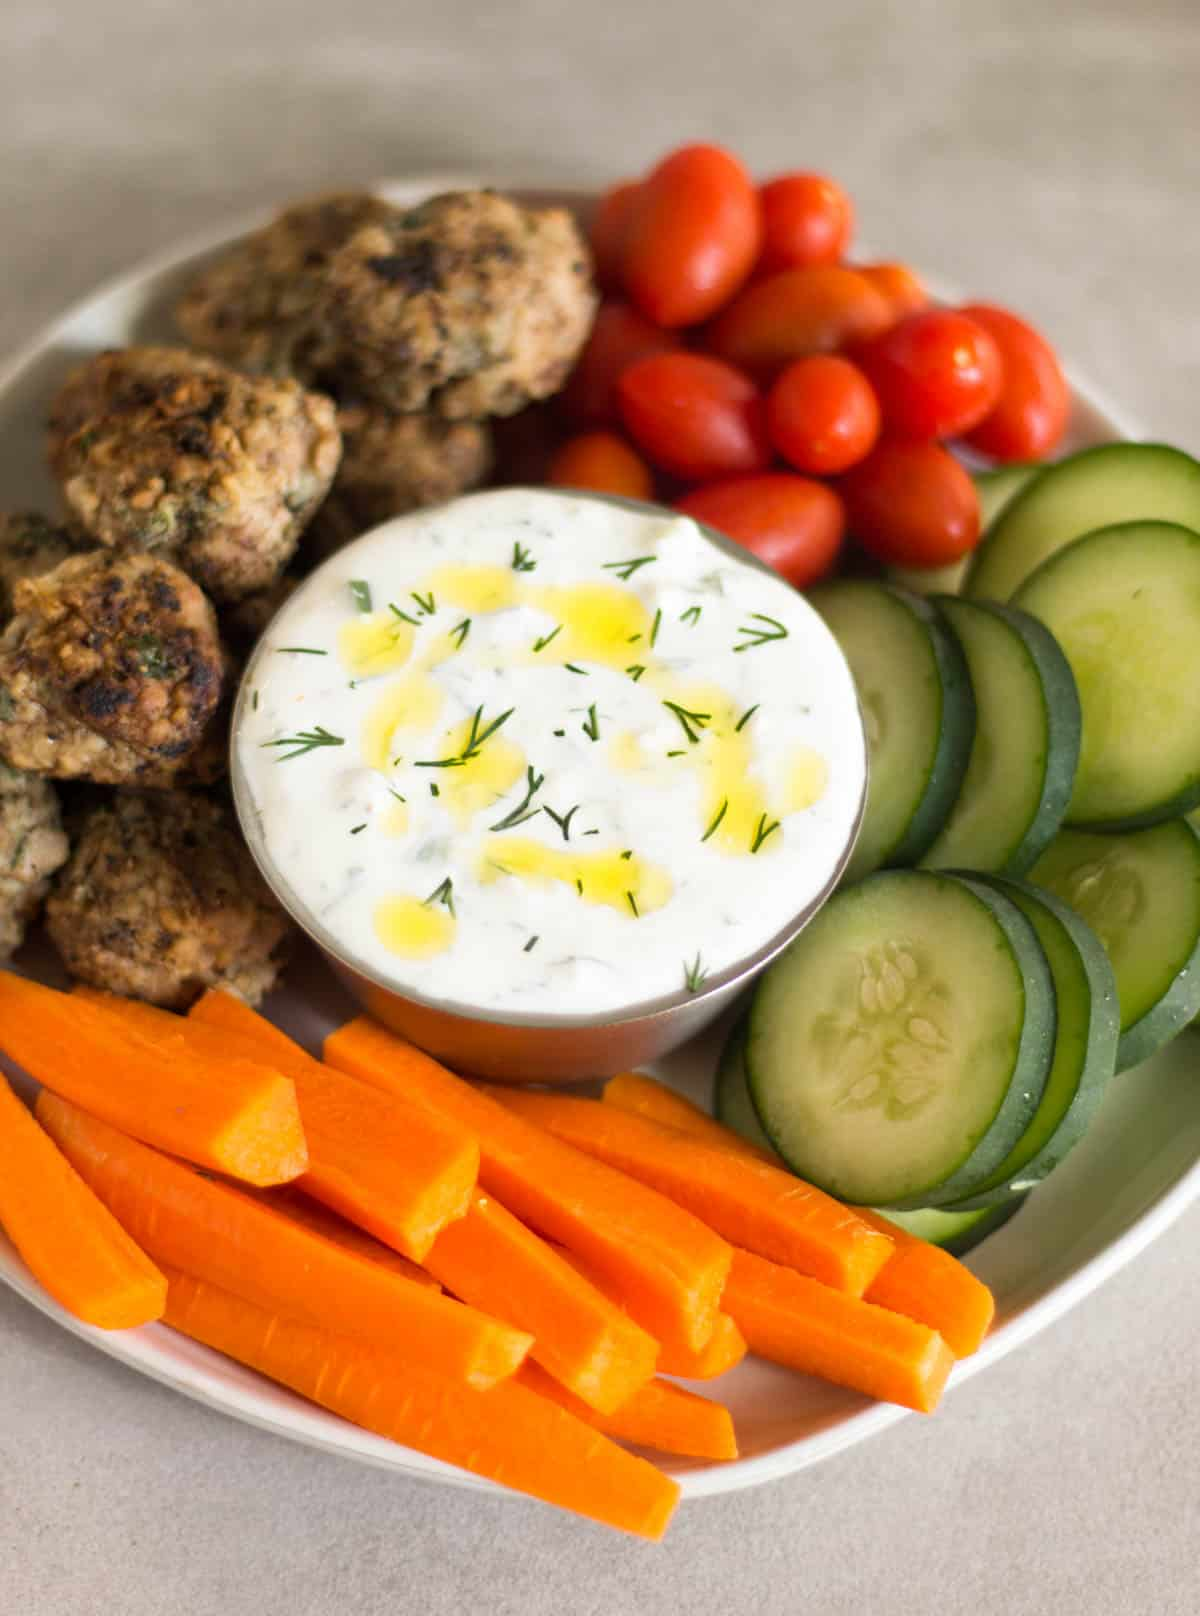 Homemade tzatziki surrounded by fresh veggies and meatballs all on a plate